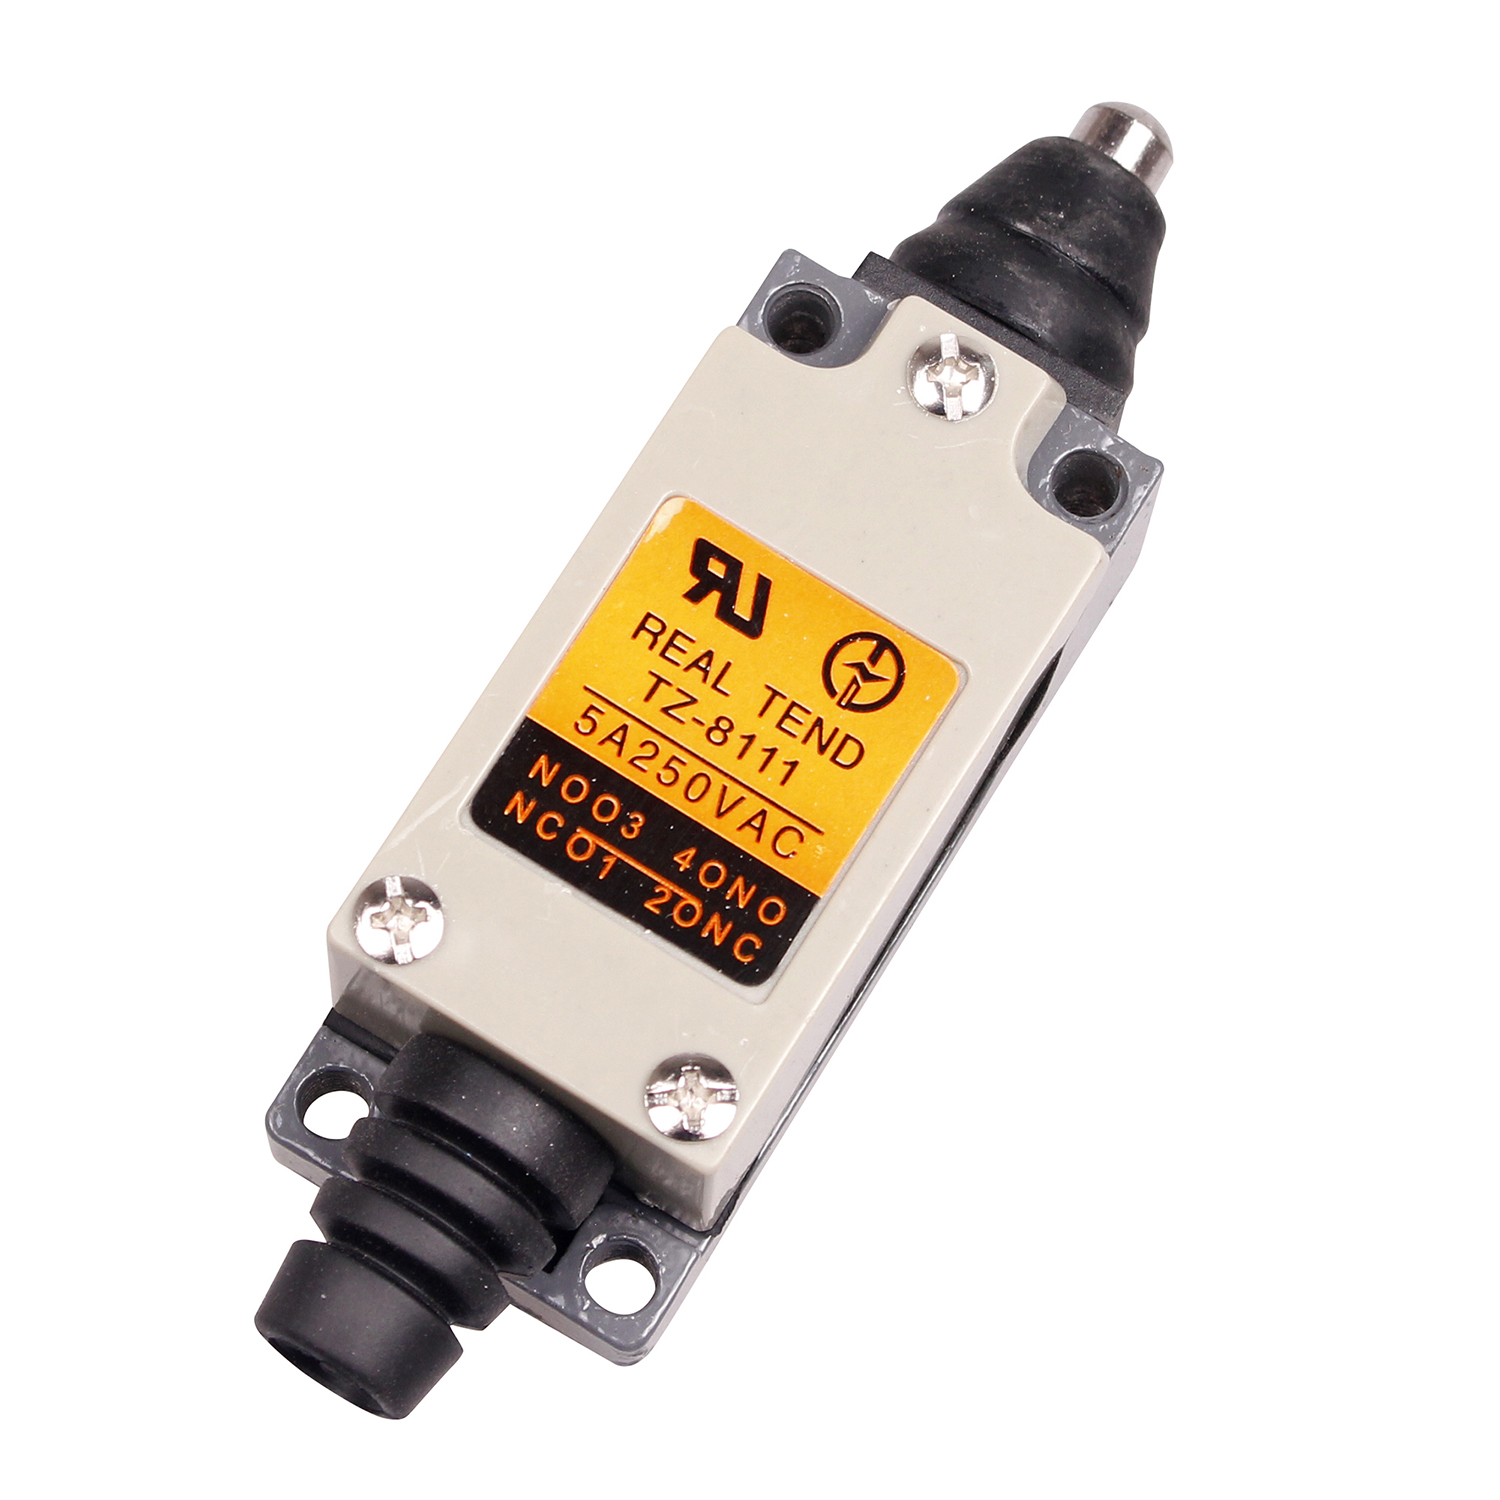 Color: LXW5 11D1 2pcs Travel Switch LXW5-11D1 LXW5-11M LXW5-11Z Limit Switch Micro Switch self-resetting